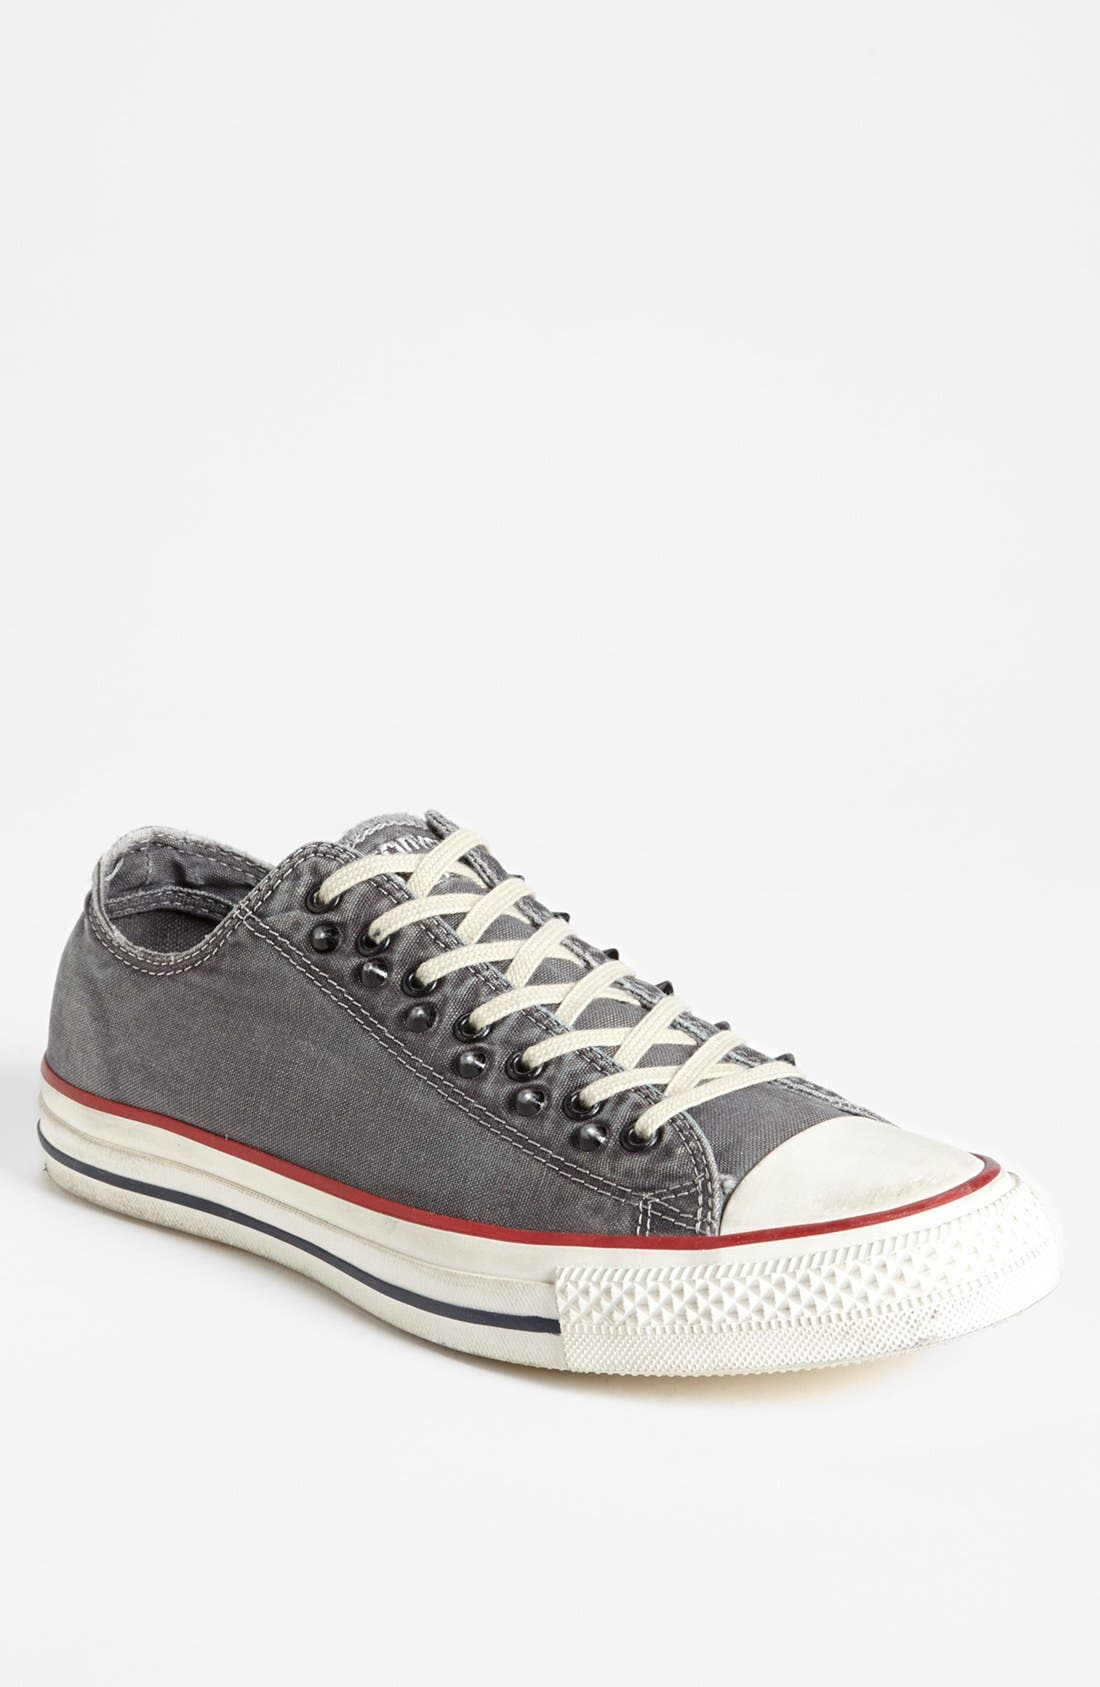 Chuck Taylor<sup>®</sup> All Star<sup>®</sup> Low Sneaker,                             Main thumbnail 1, color,                             007